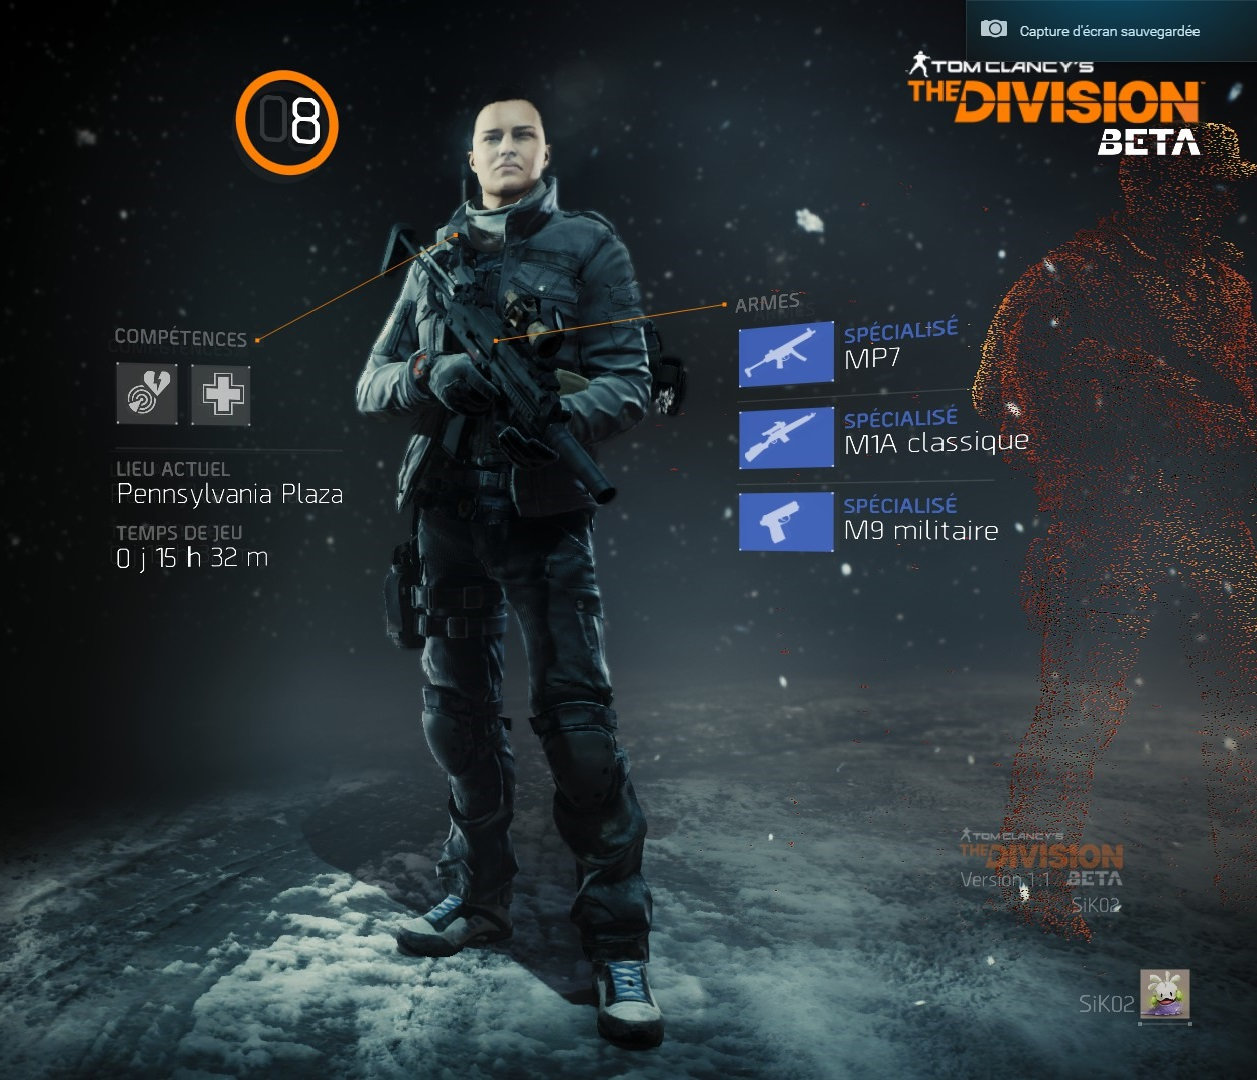 The division Sik